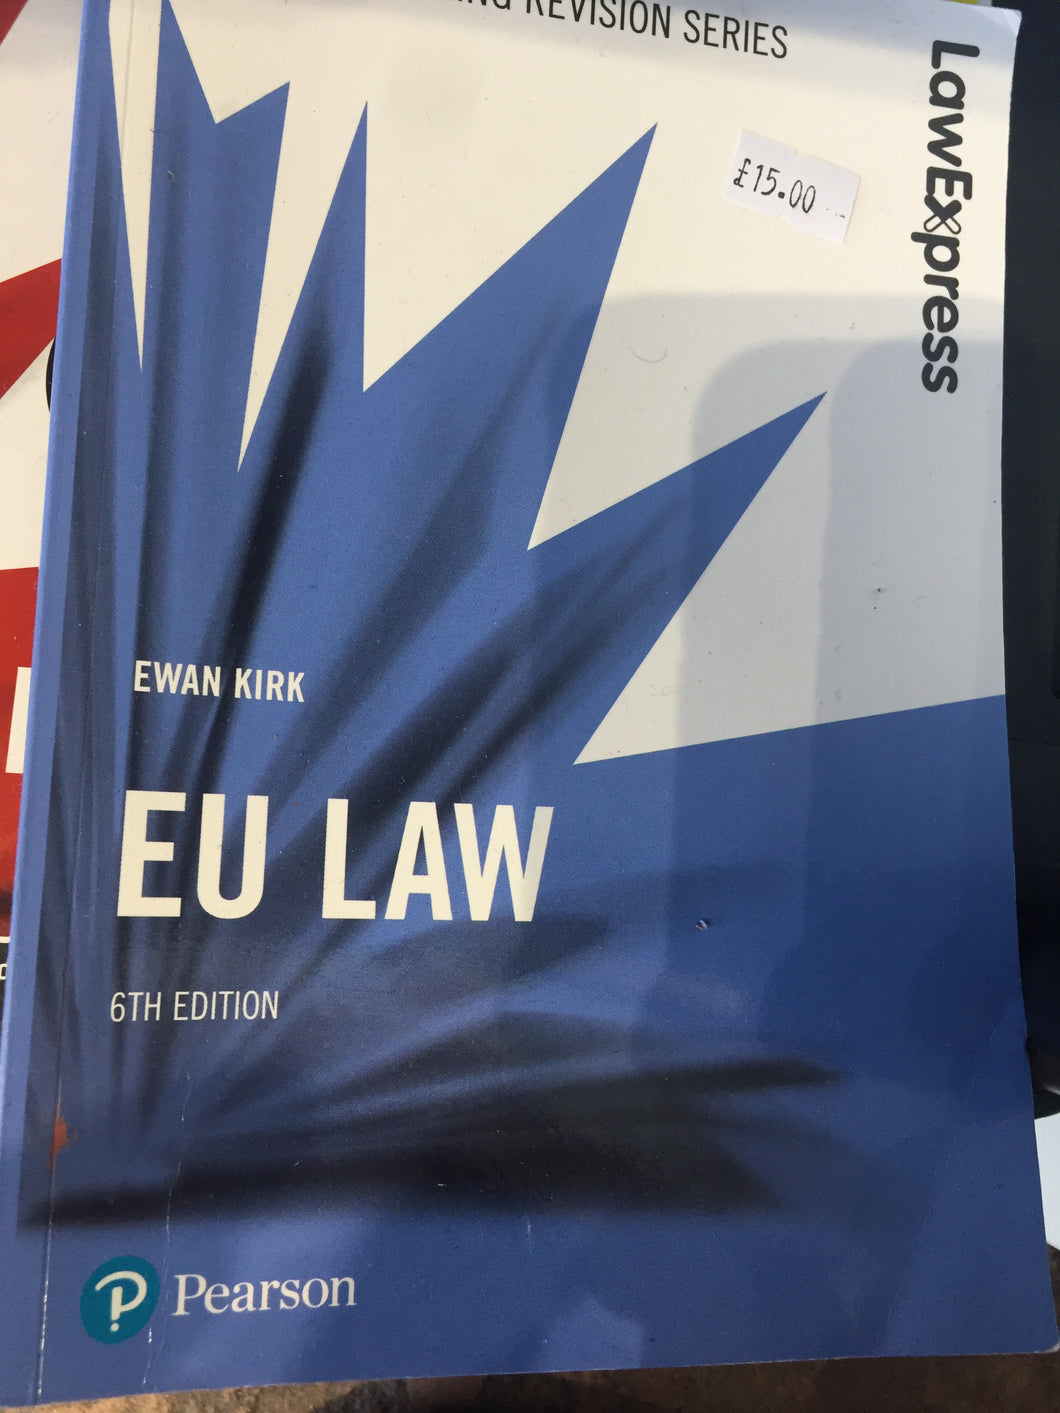 EU law - First Class Learning Bradford